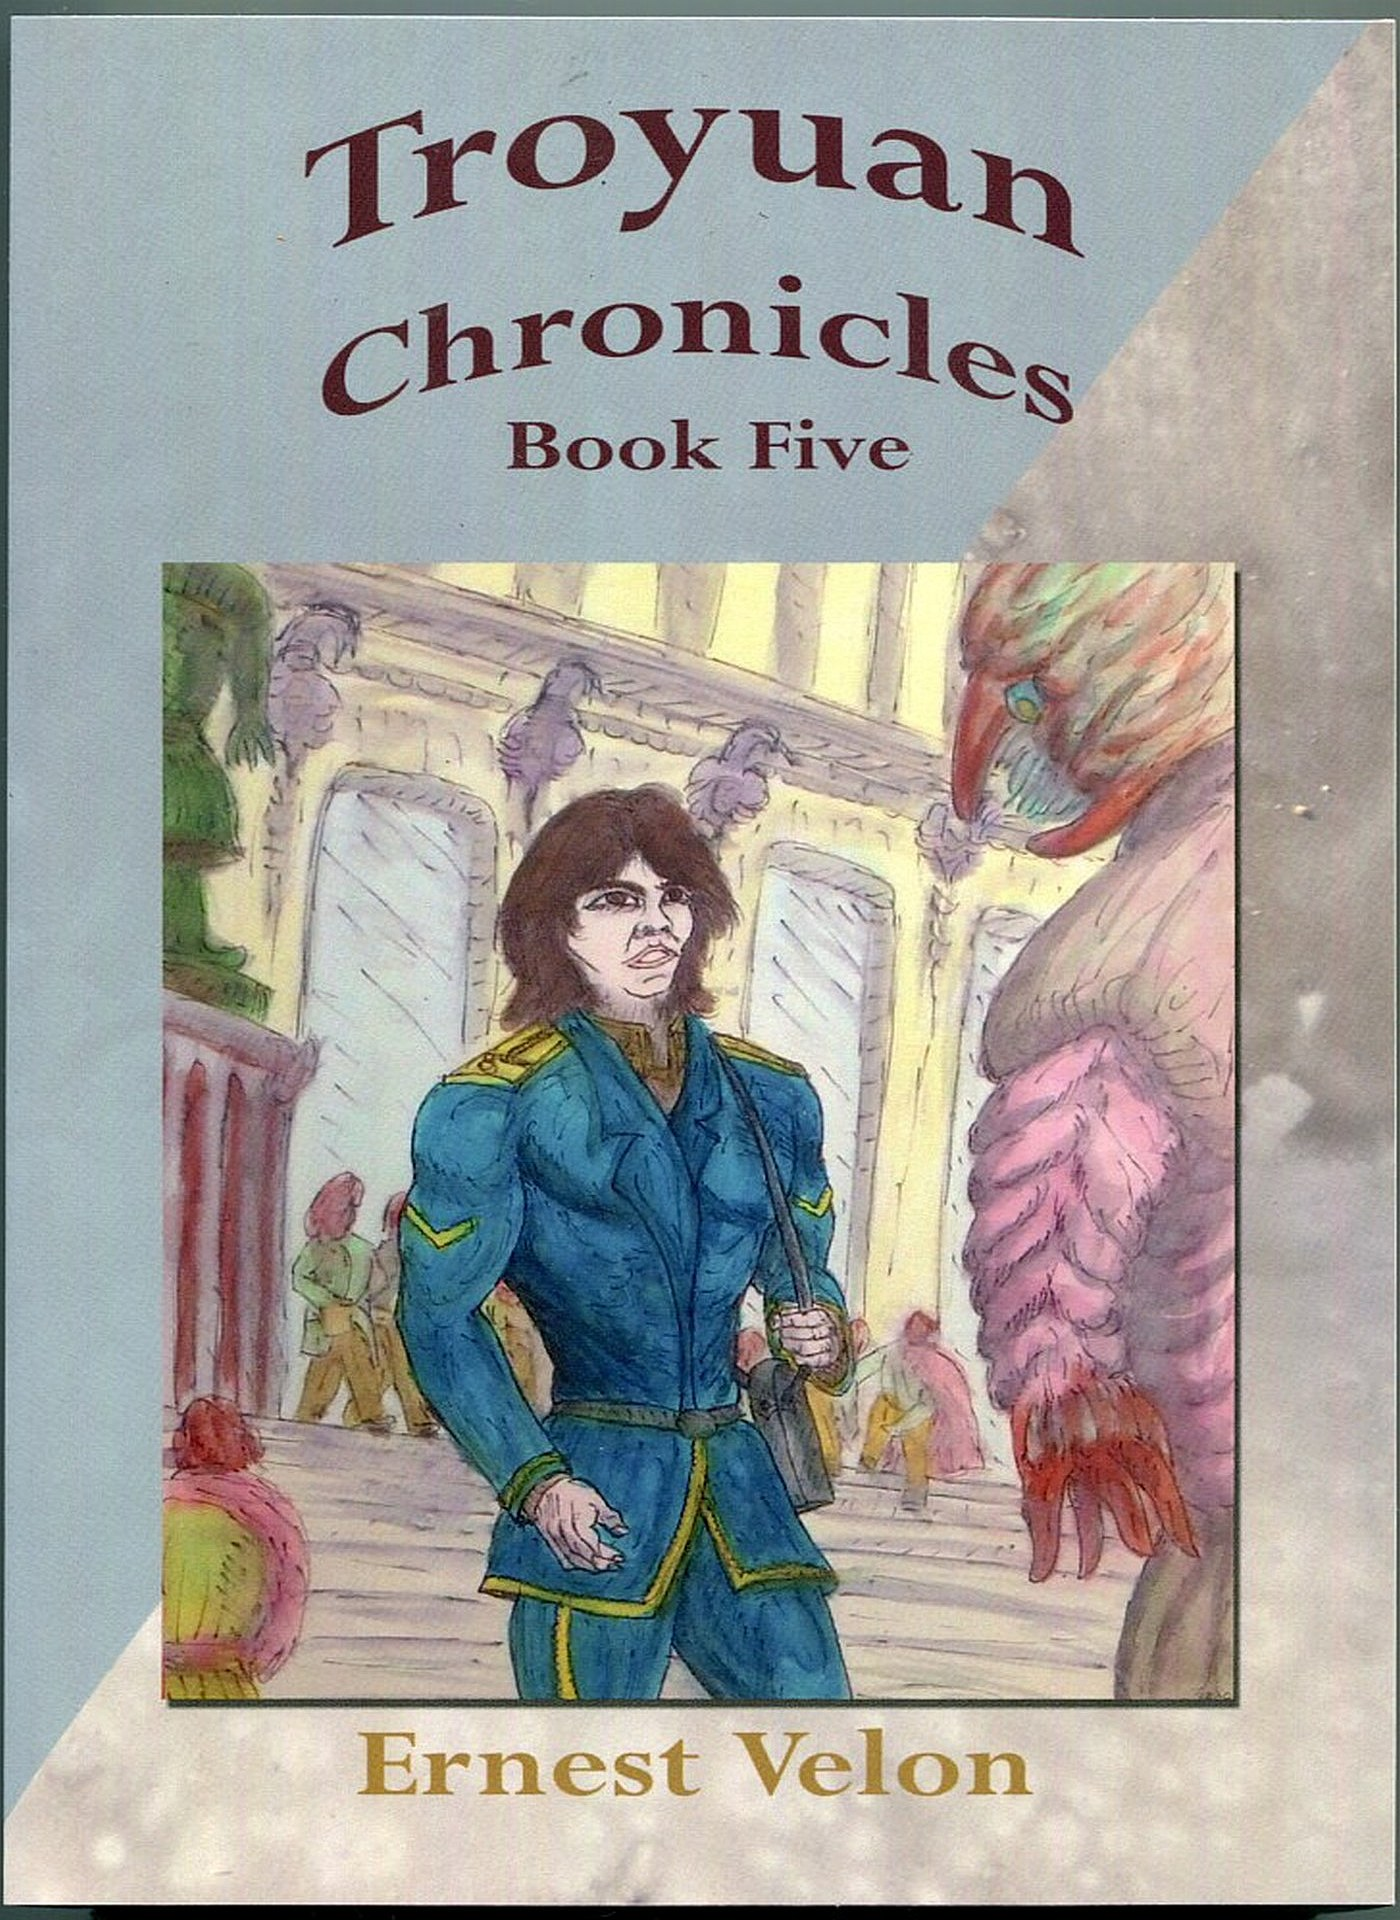 The Troyuan Chronicles... Book Five